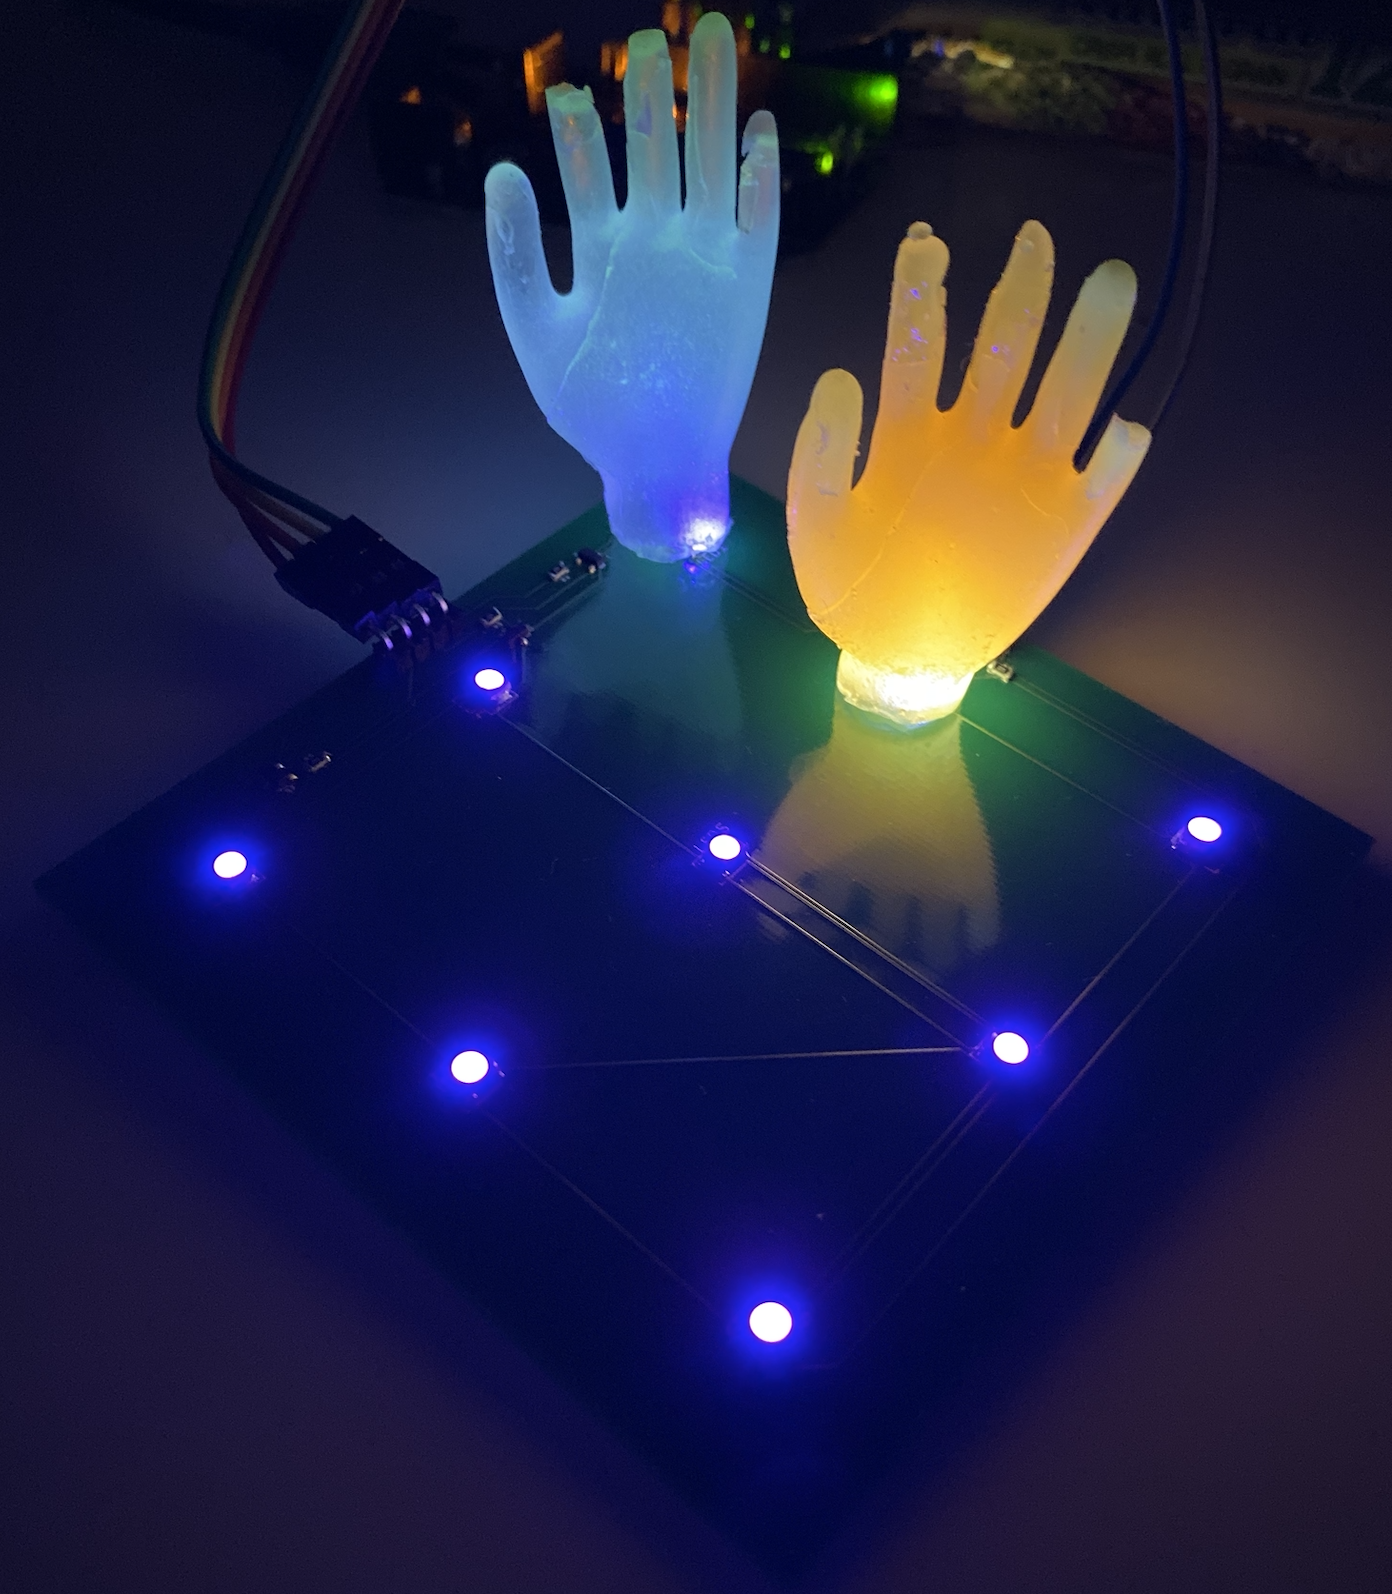 Testing the illumination of the hands on assembled matrix.